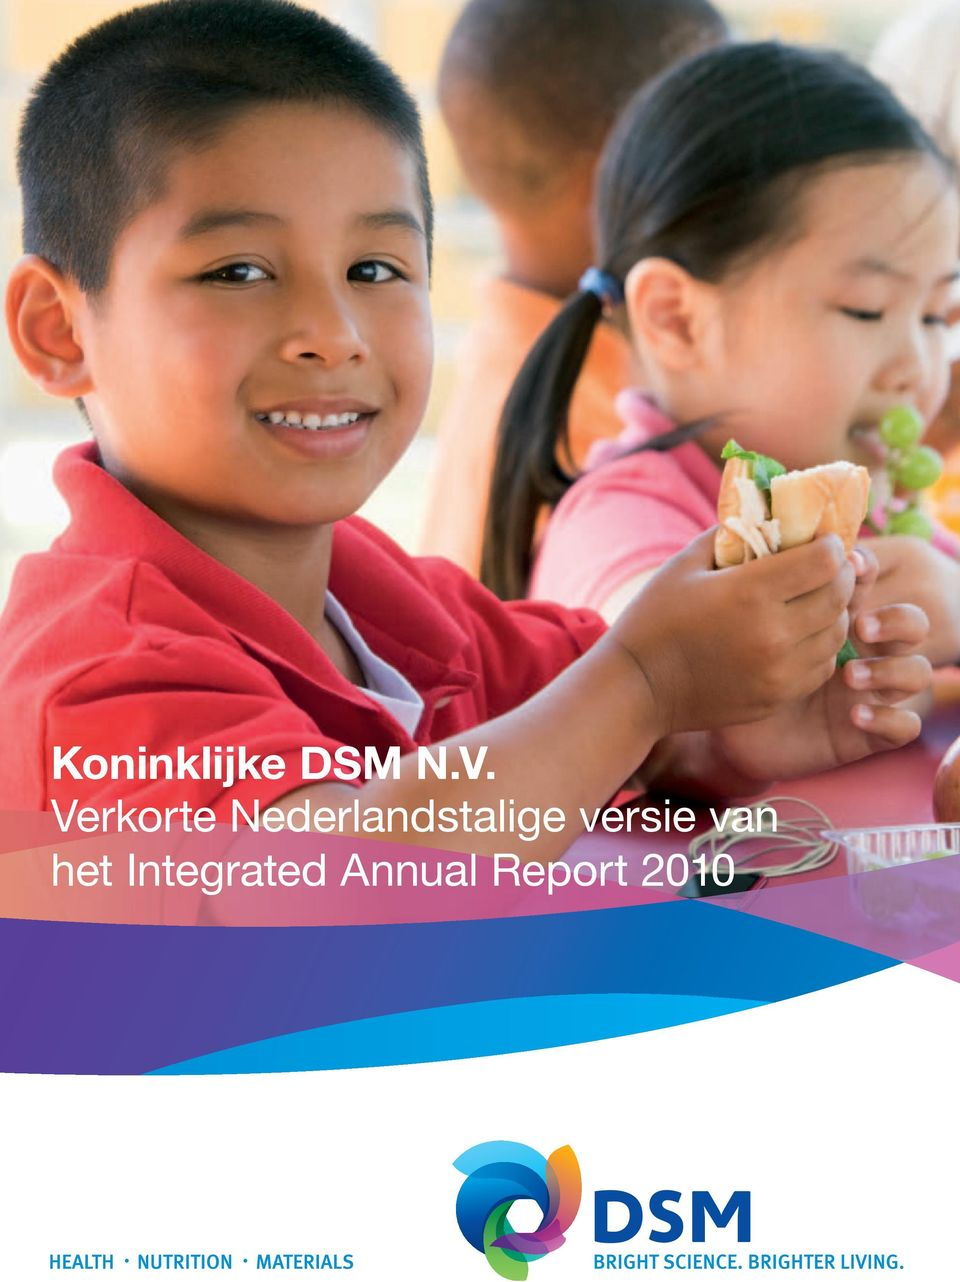 Integrated Annual Report 2010 Document: